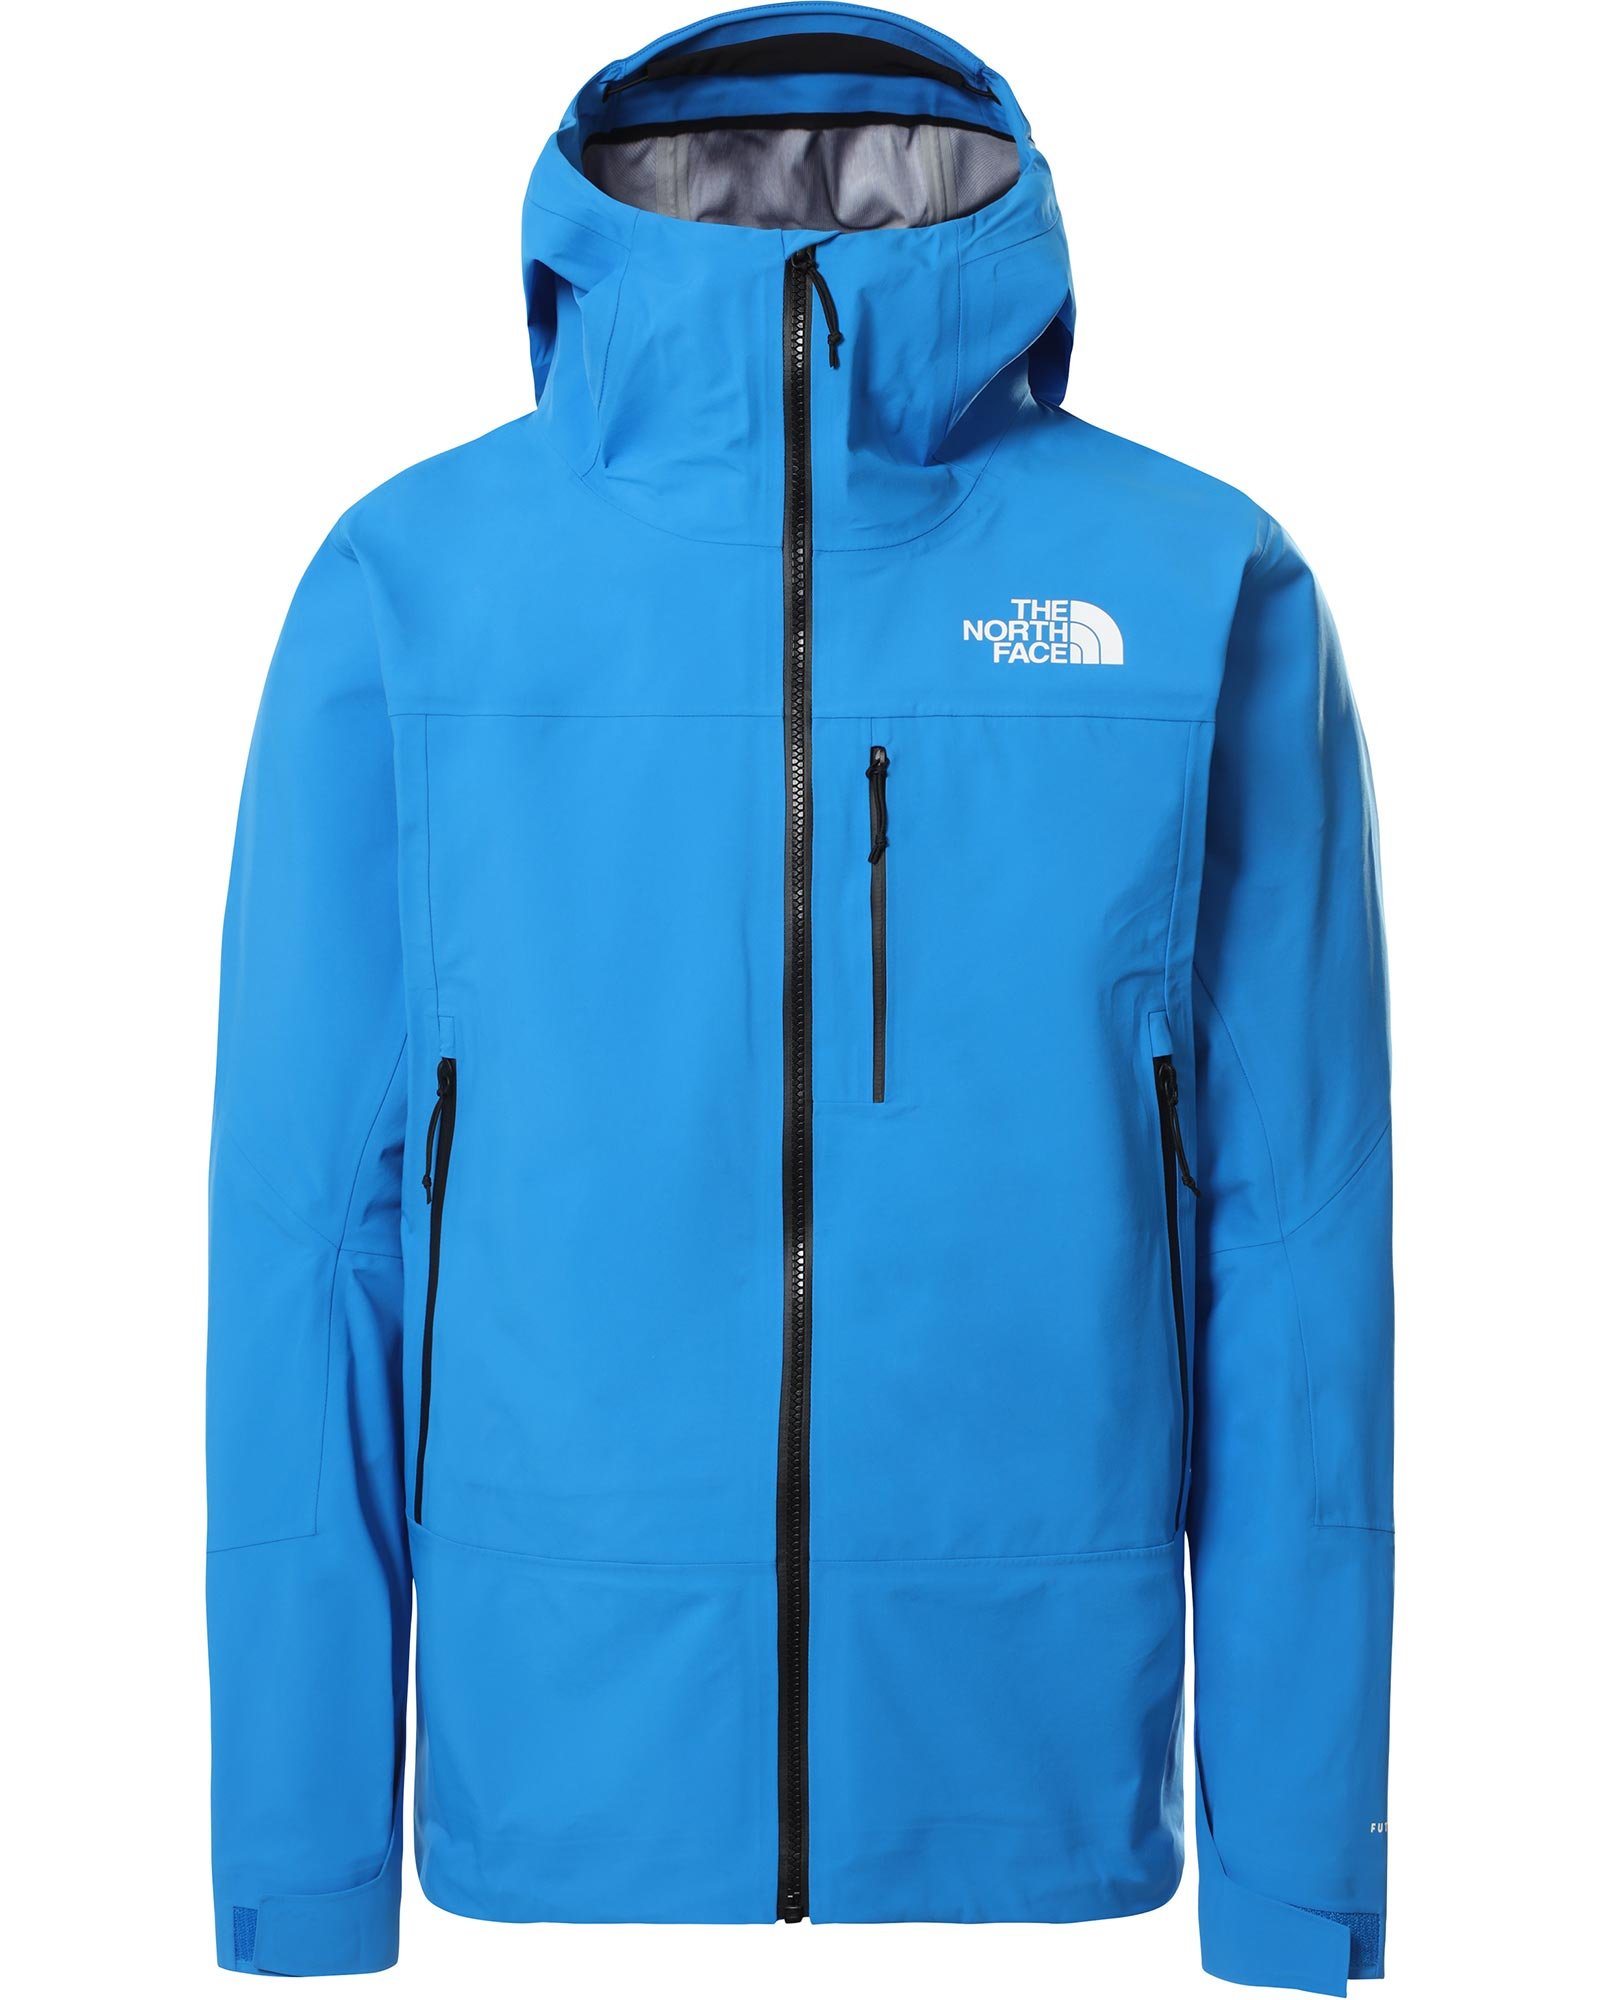 The North Face Mens 1990 Mountain Q Jacket